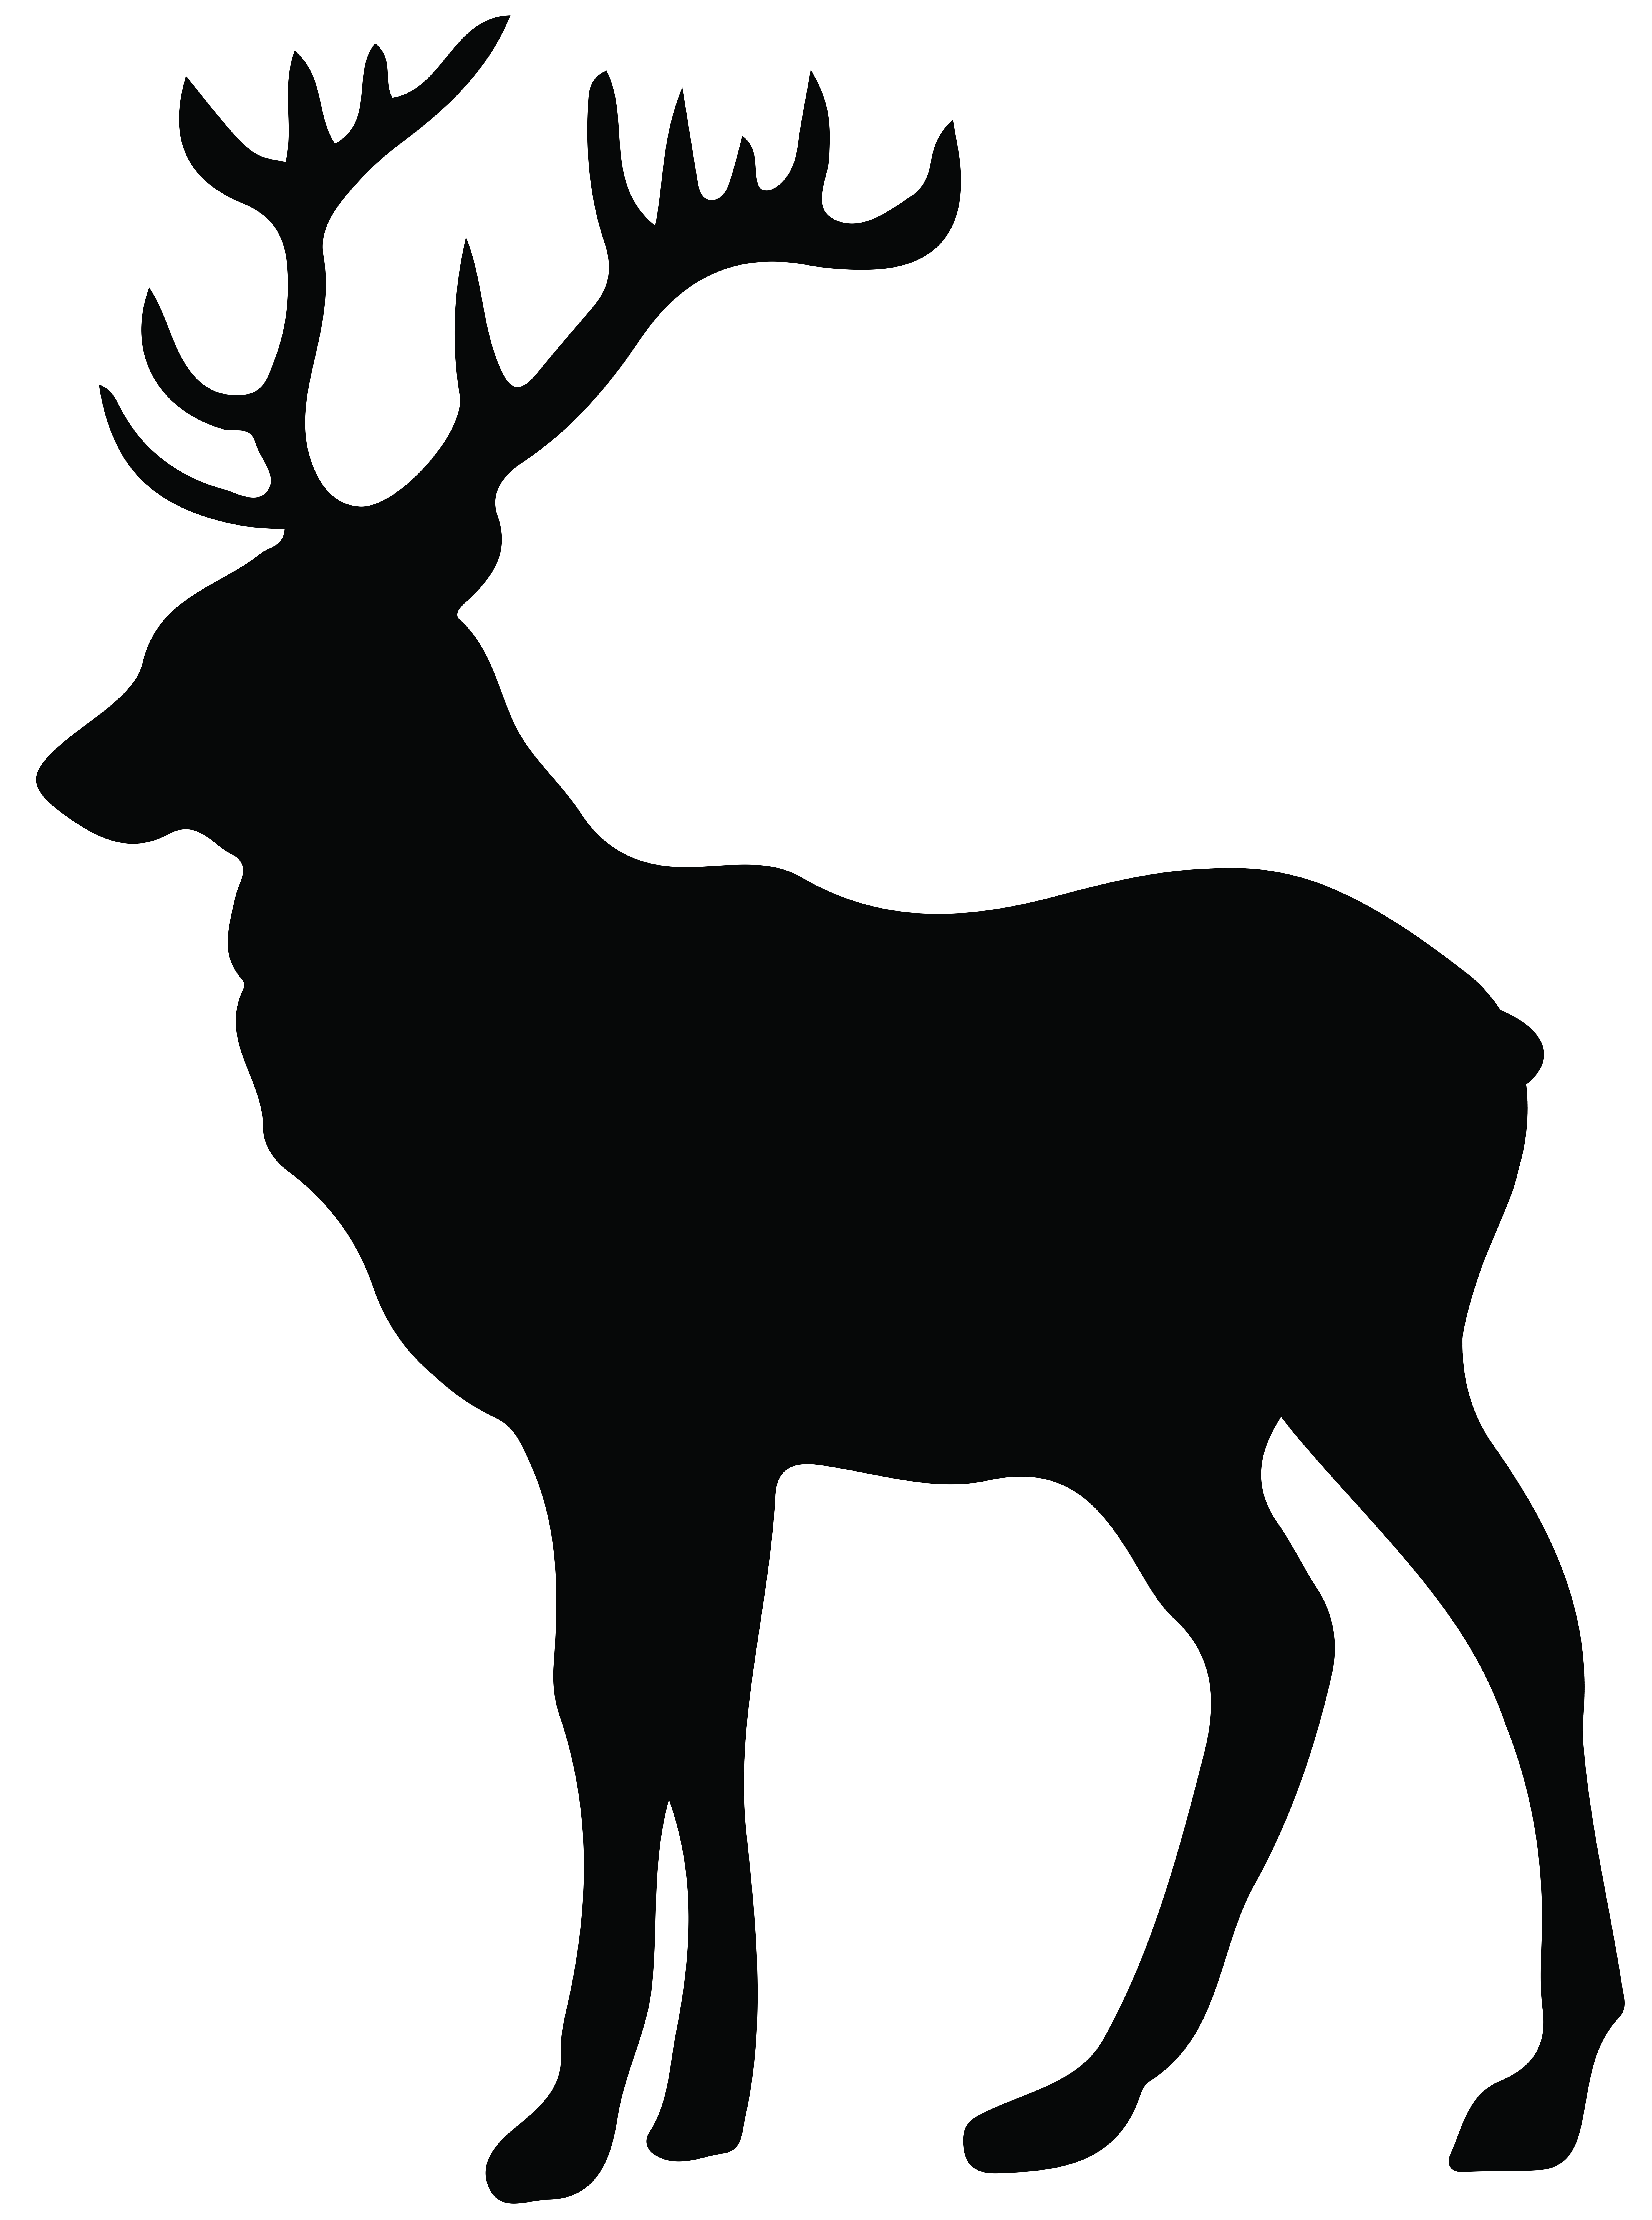 Stag clipart Transparent PNG Silhouette Gallery Image